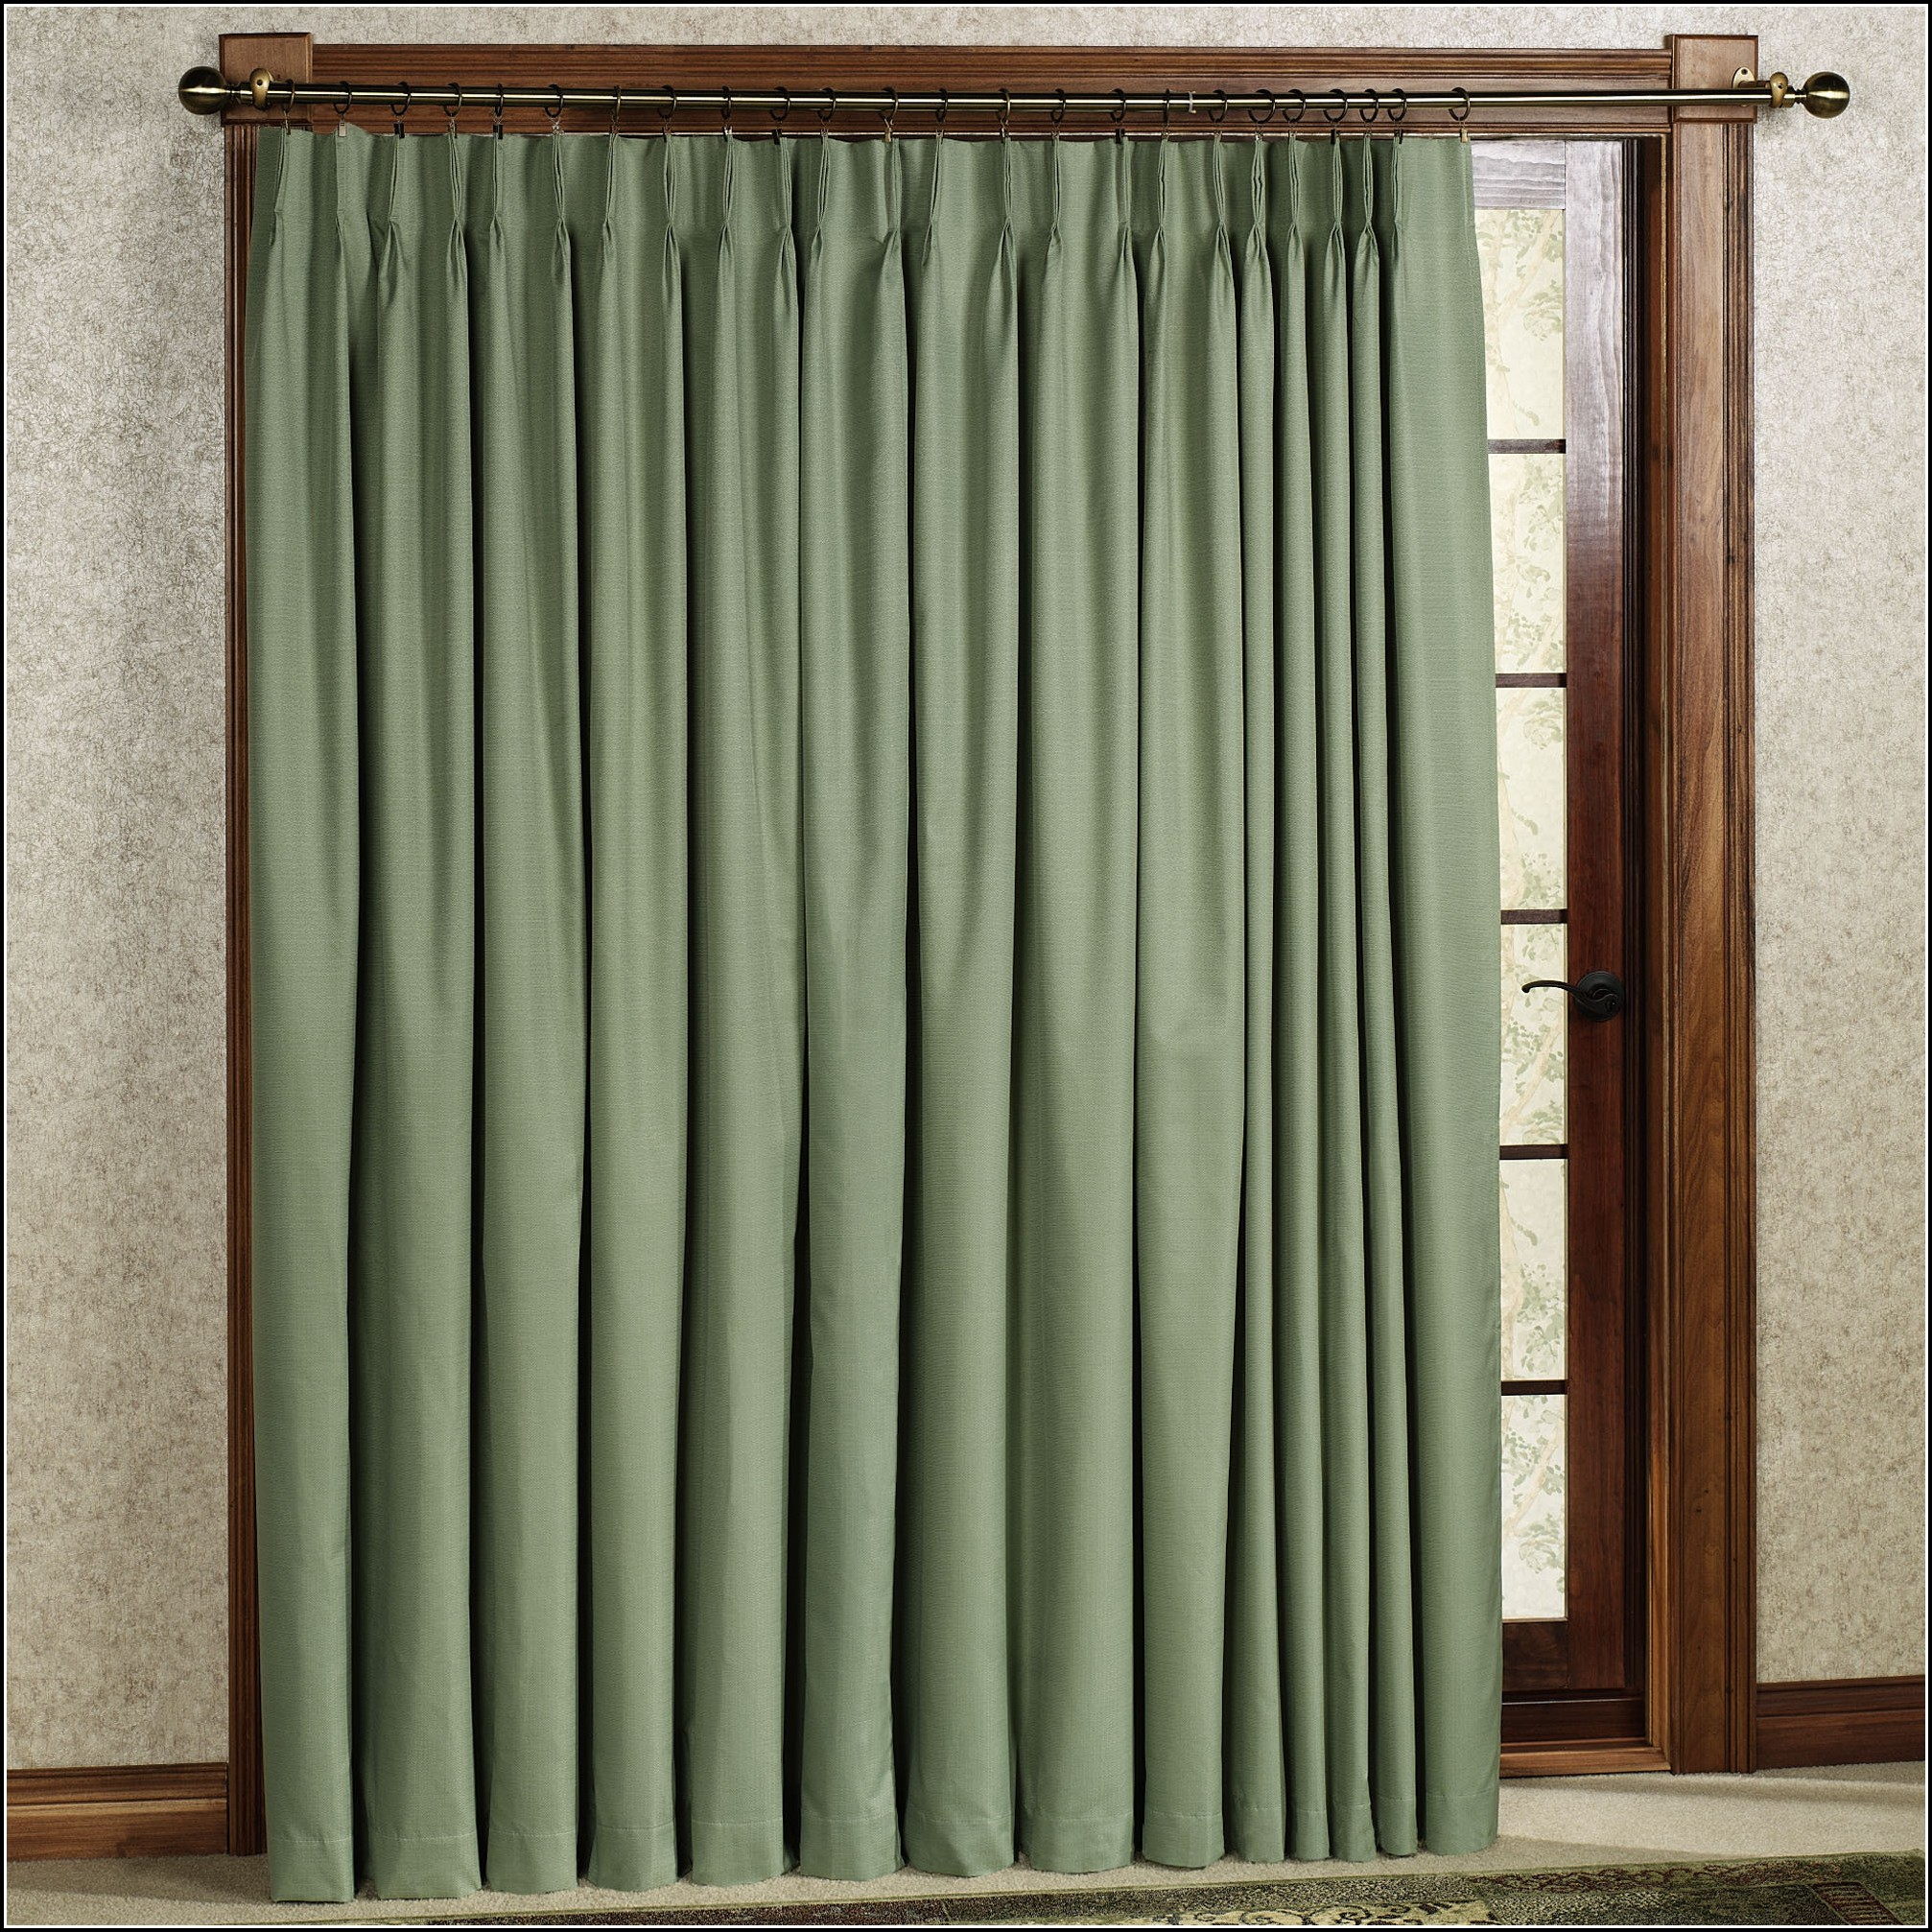 Thermal Blackout Patio Door Curtains Curtains Home Design Ideas Amdl9laqyb27672